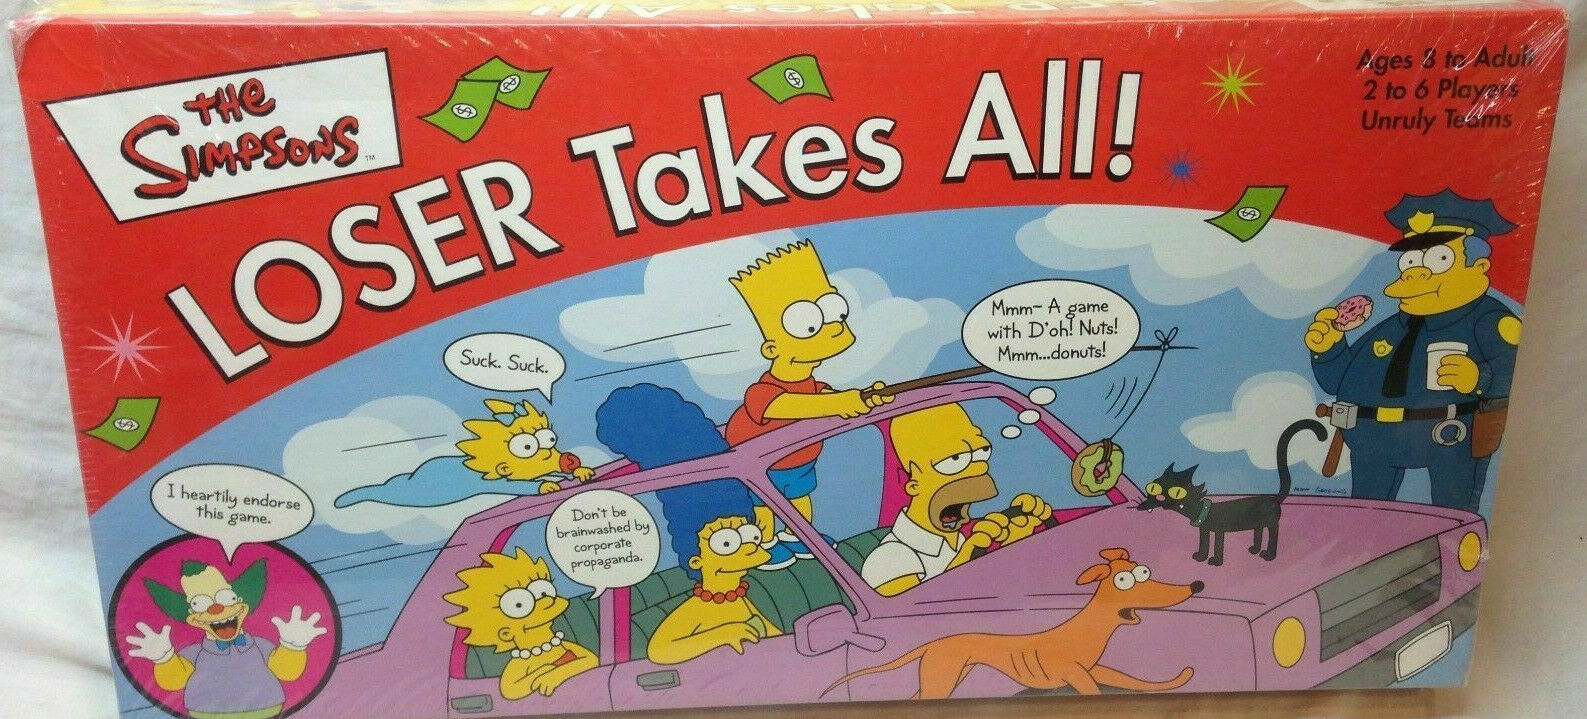 Primary image for THE SIMPSONS Loser Takes All! Party Board Game 2001 BRAND NEW